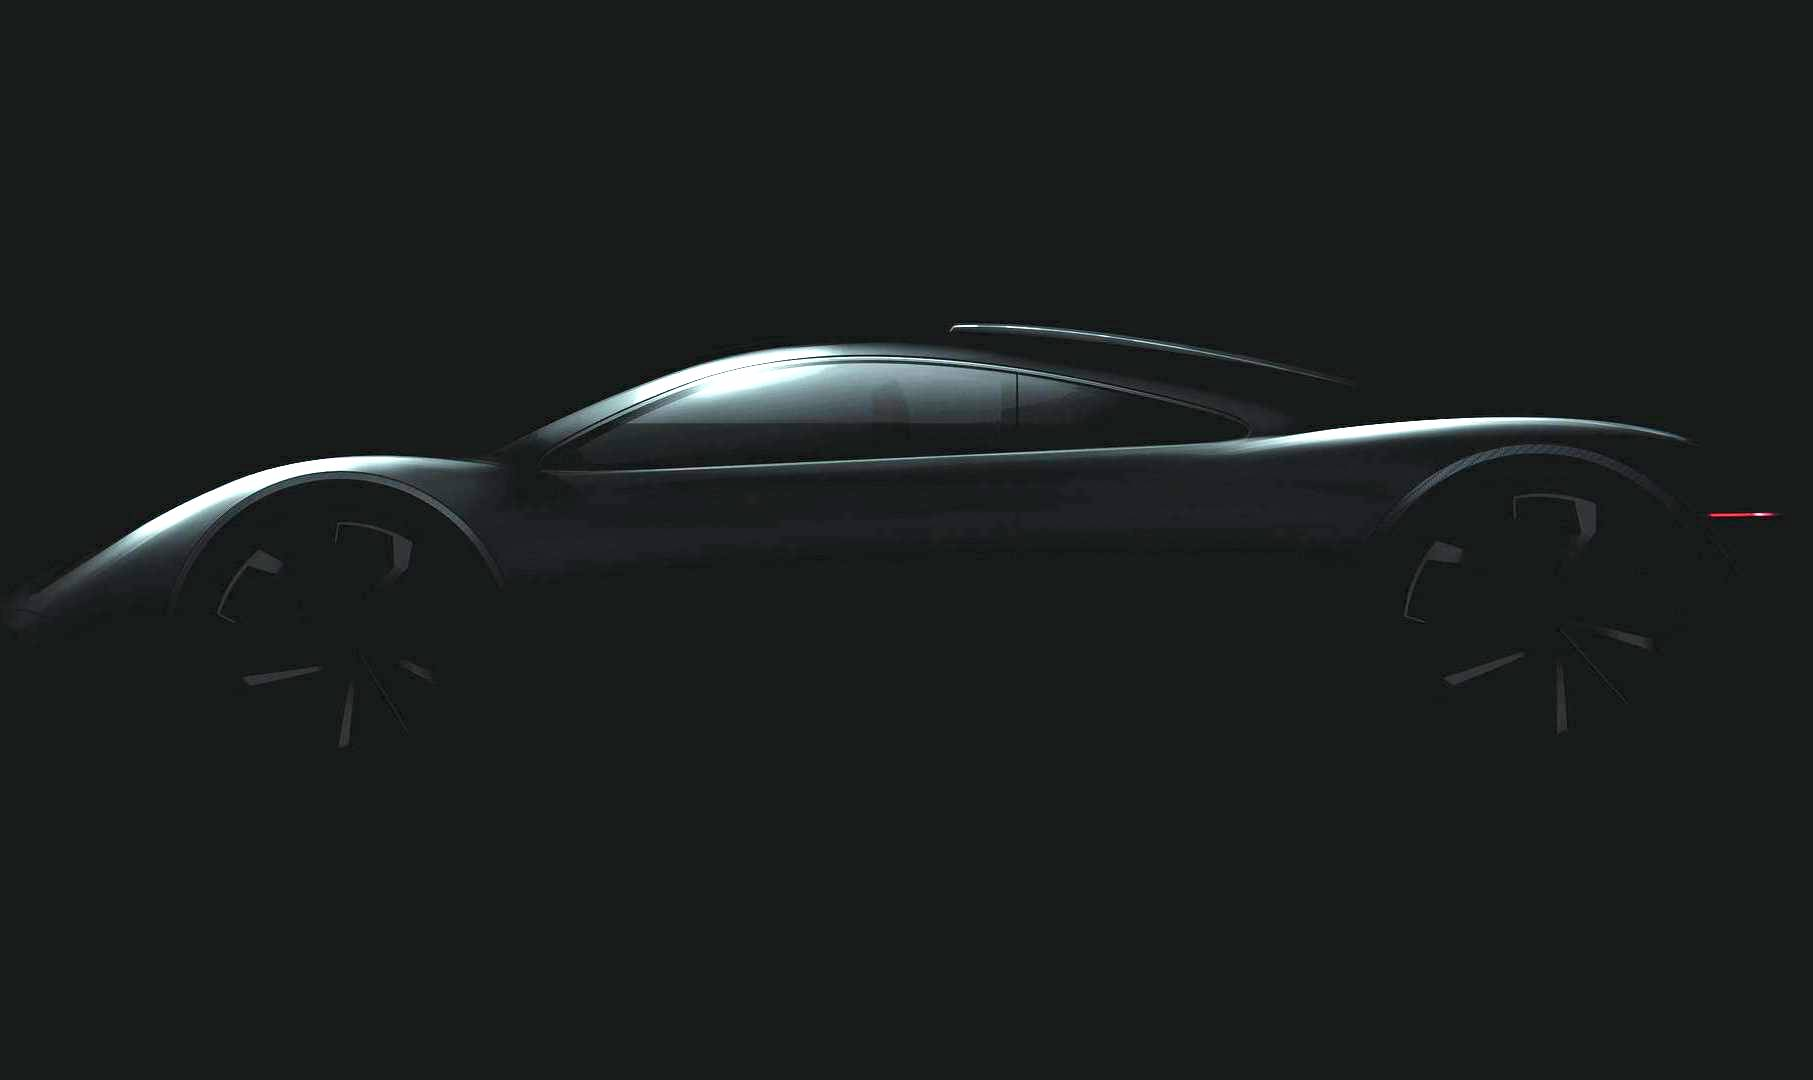 tvr griffith trademark suggests name for new model report performancedrive. Black Bedroom Furniture Sets. Home Design Ideas